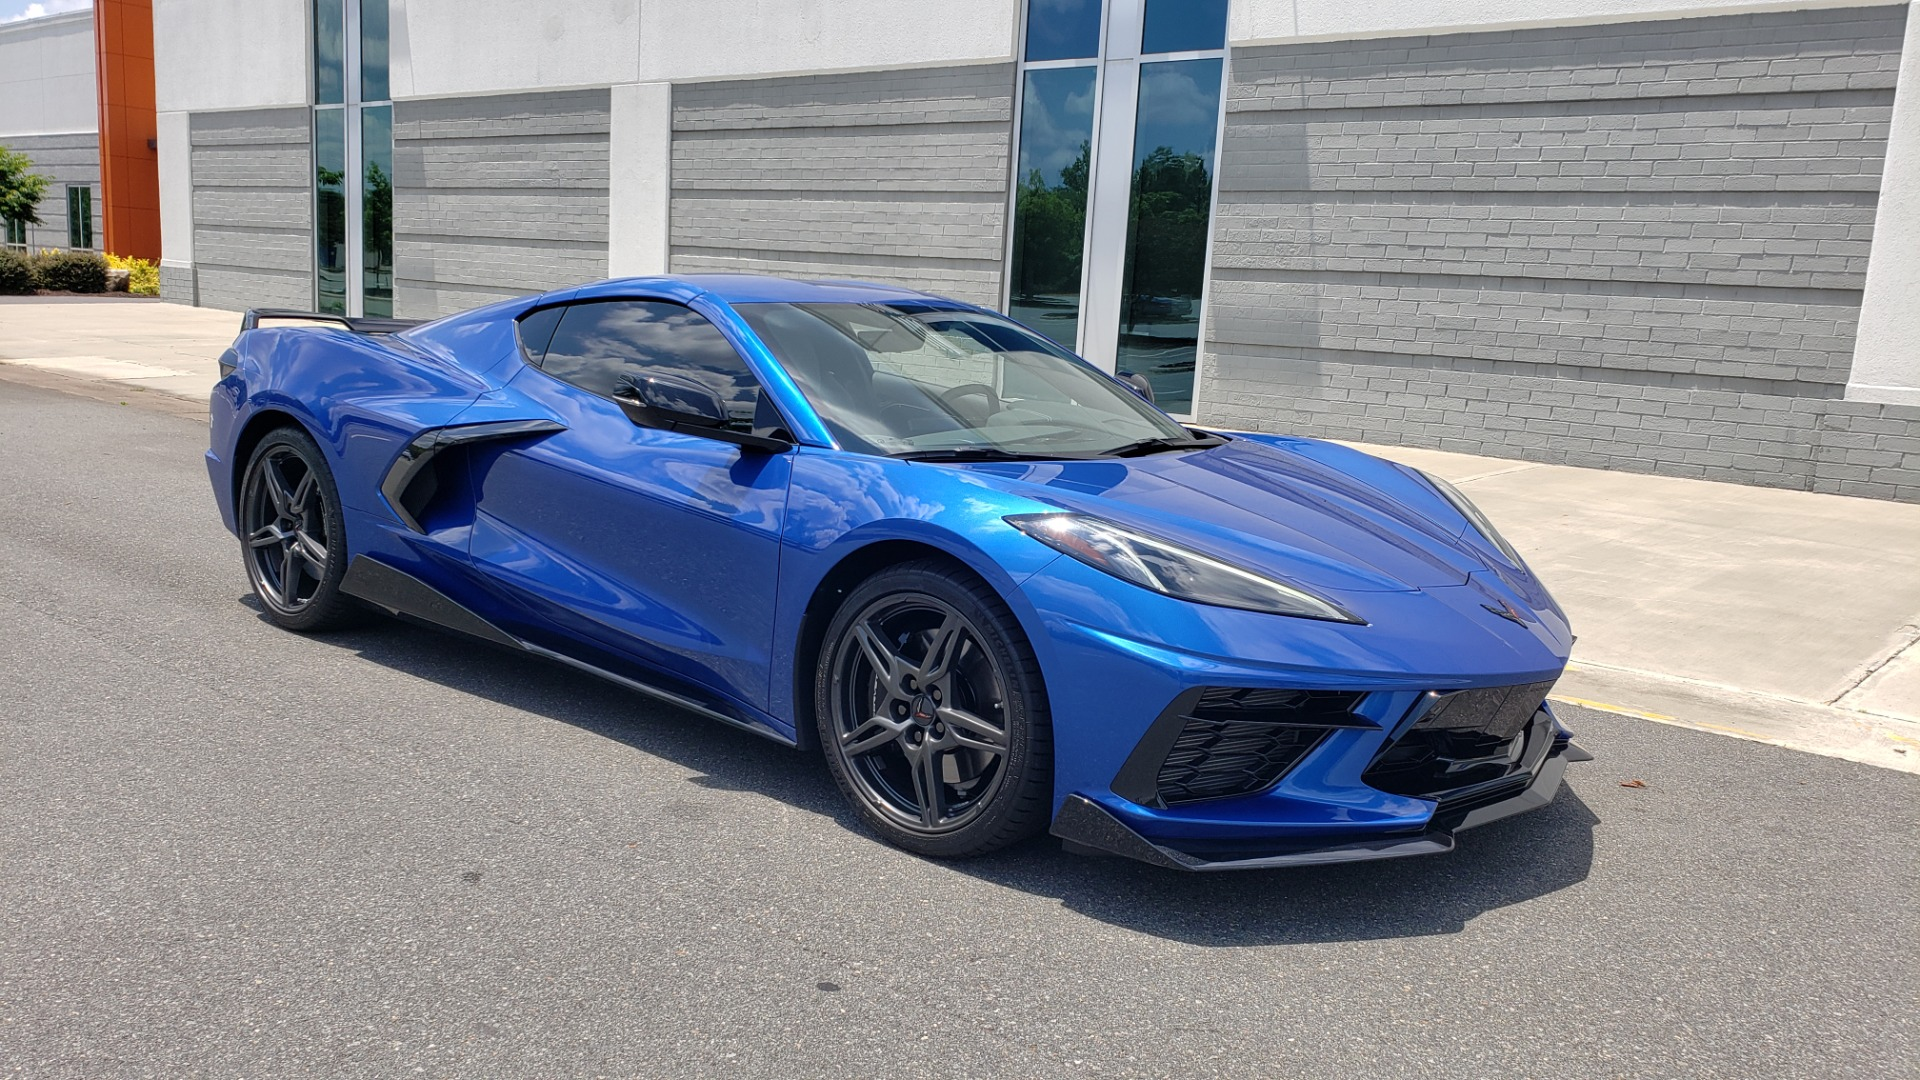 Used 2020 Chevrolet CORVETTE C8 STINGRAY COUPE 2LT / PERF & Z51 PKG / NAV / BOSE / 8-SPD AUTO / REARVIEW for sale Sold at Formula Imports in Charlotte NC 28227 9